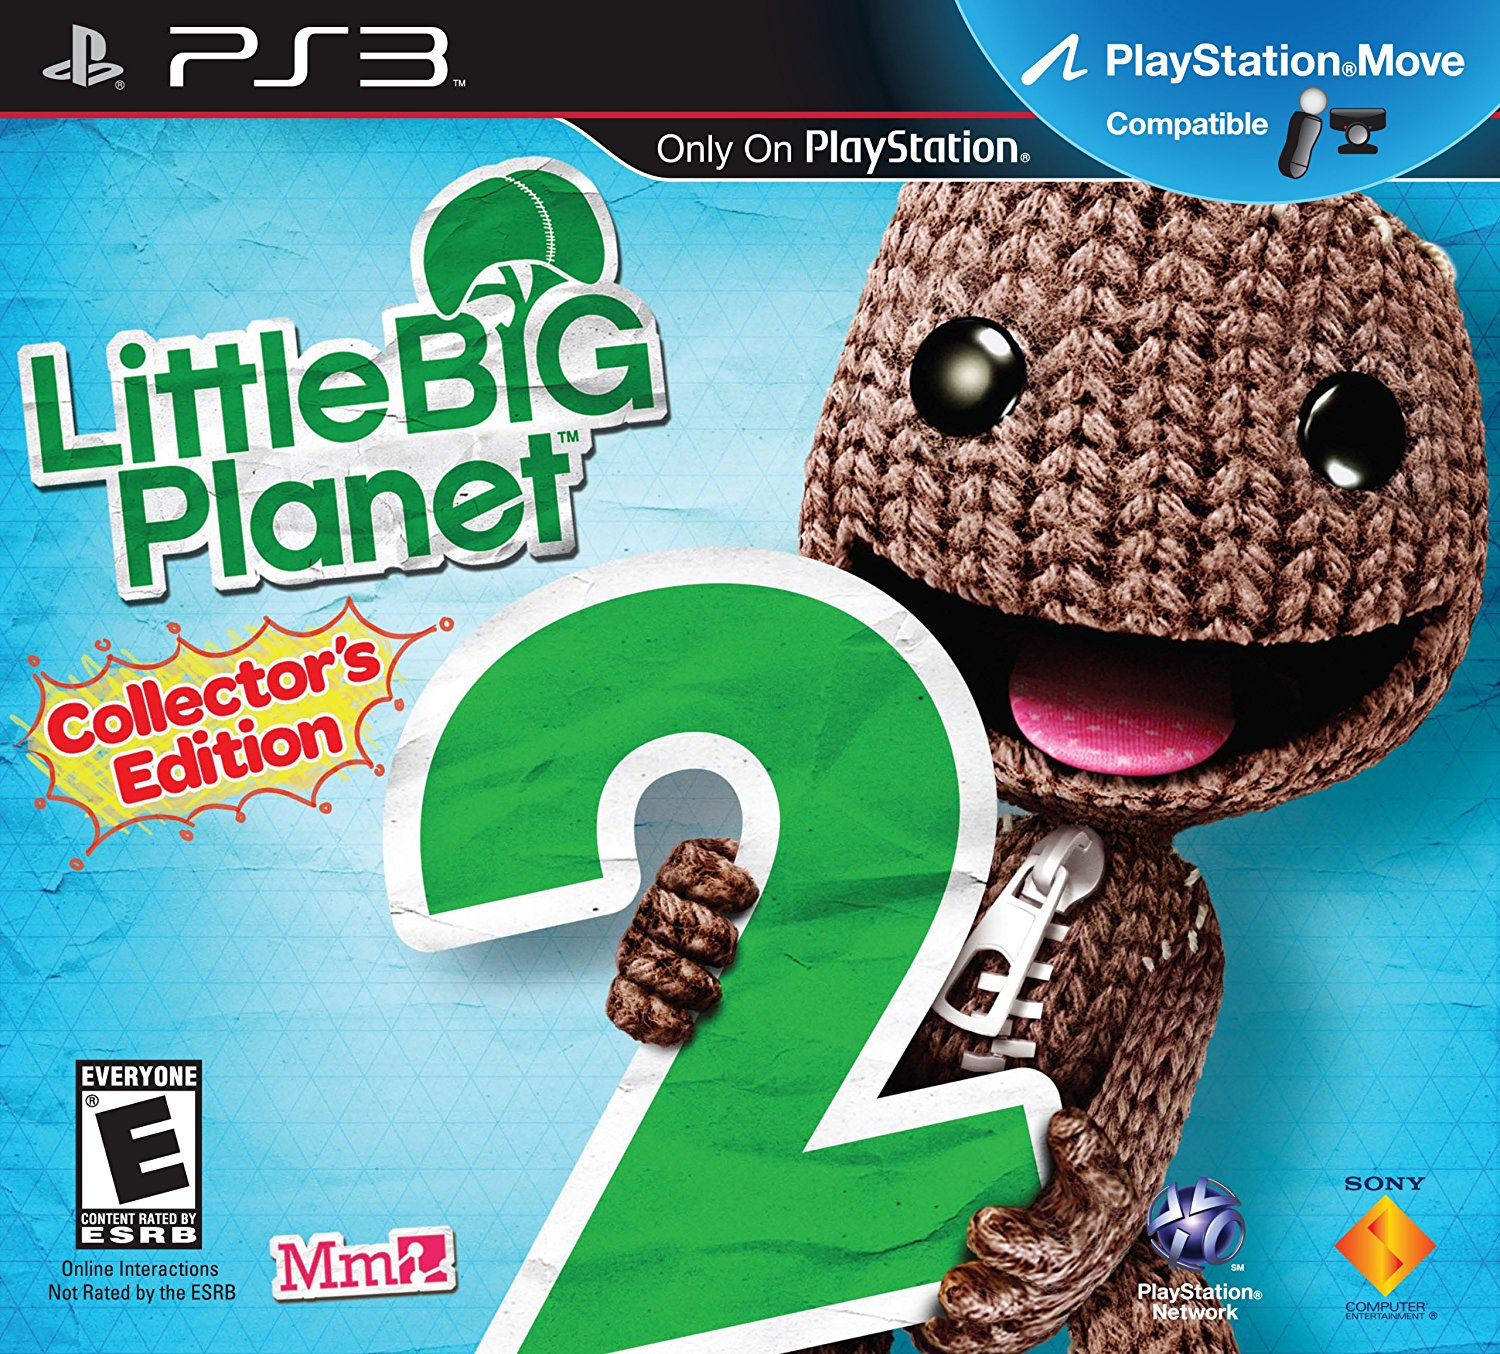 LittleBigPlanet 2 Collector's Edition